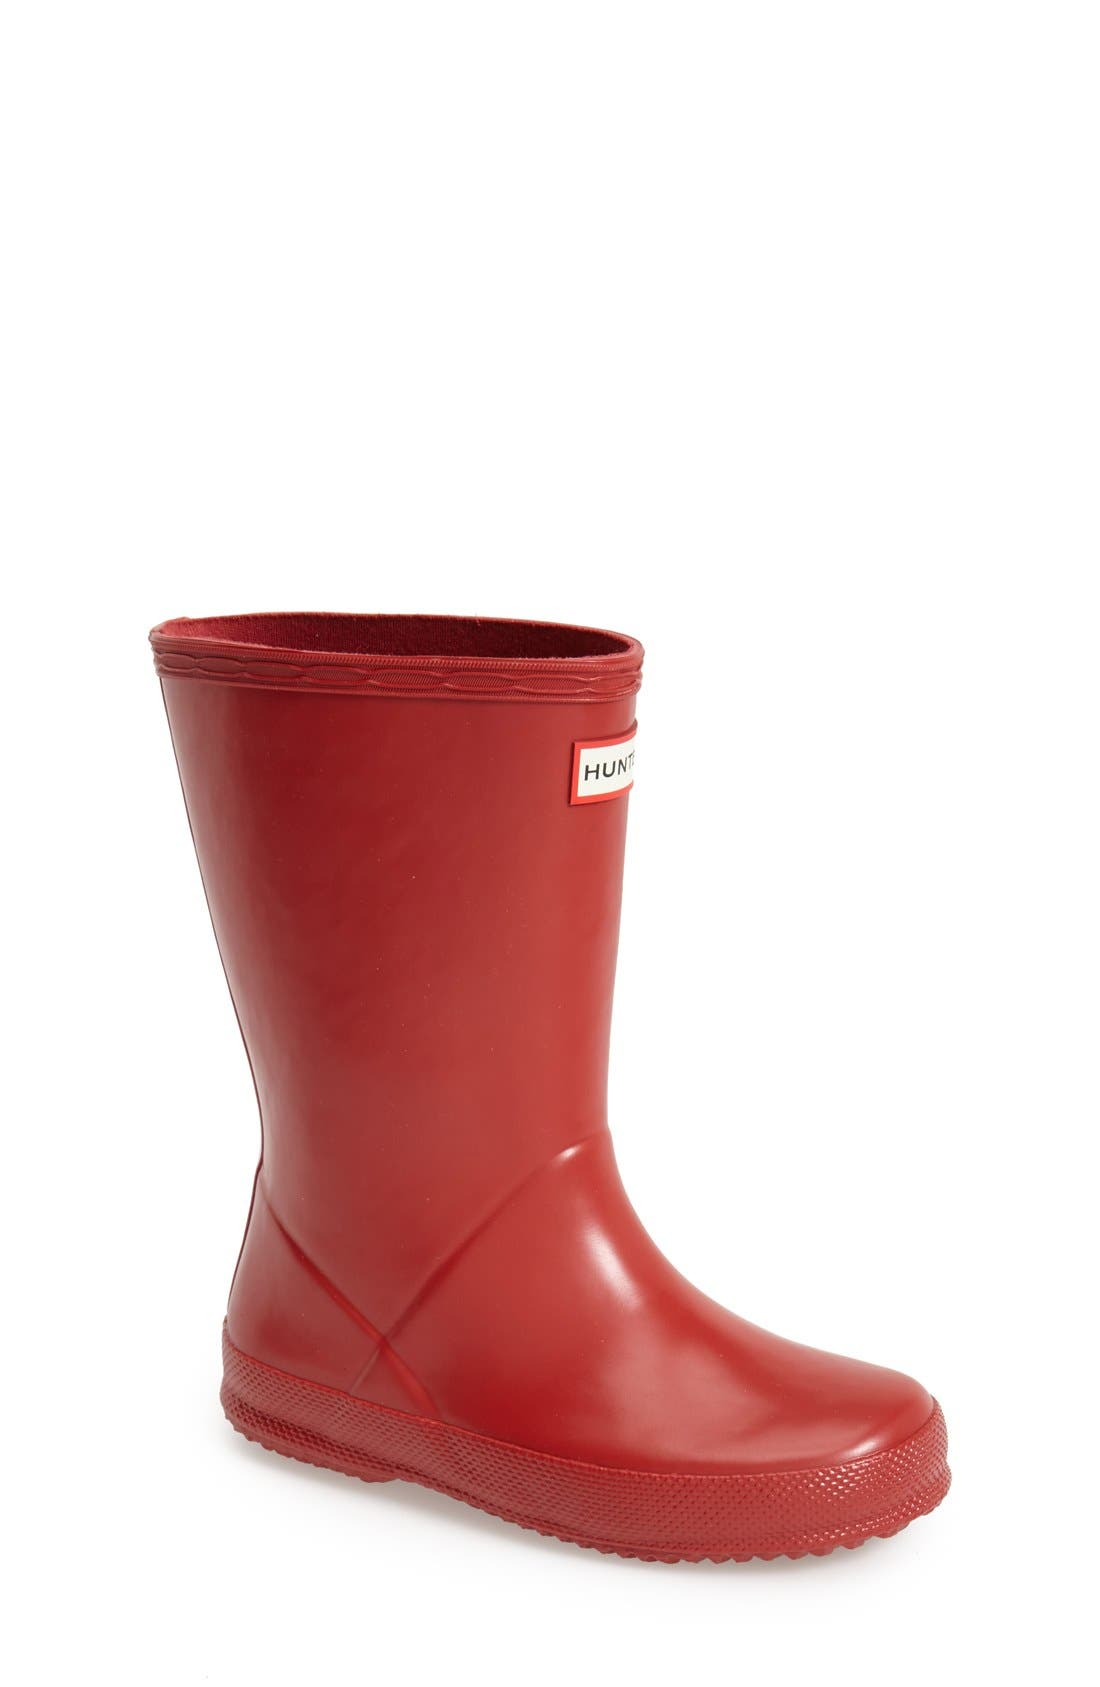 'First Classic' Rain Boot,                             Main thumbnail 1, color,                             Military Red